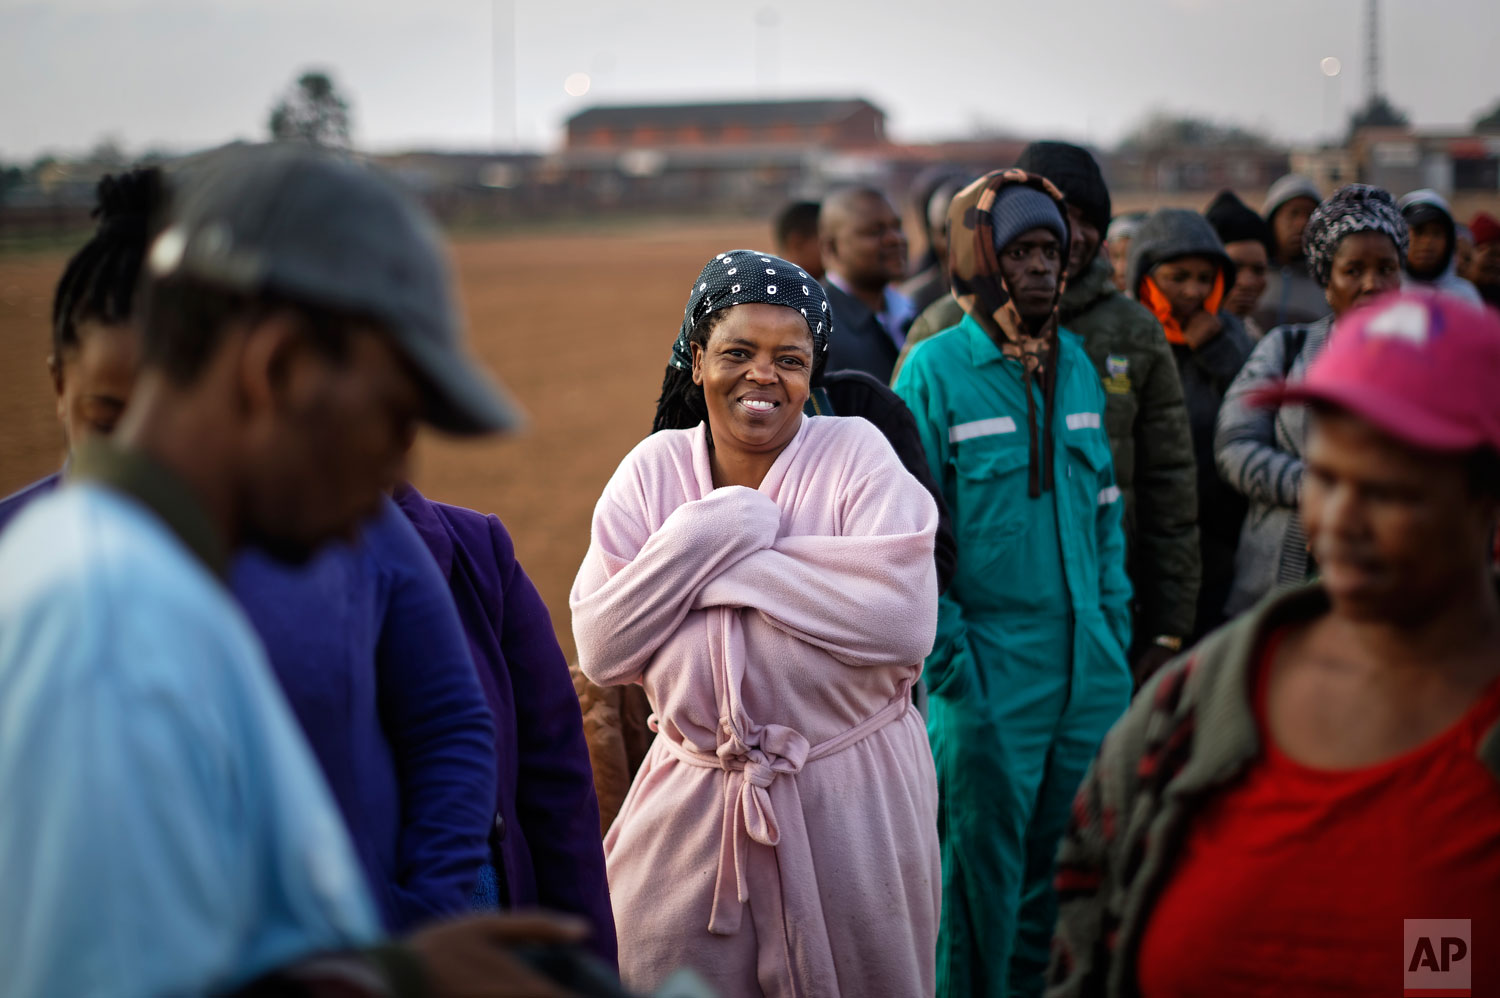 South Africans queue in the early morning cold to cast their votes in the mining settlement of Bekkersdal, west of Johannesburg, in South Africa Wednesday, May 8, 2019.  (AP Photo/Ben Curtis)